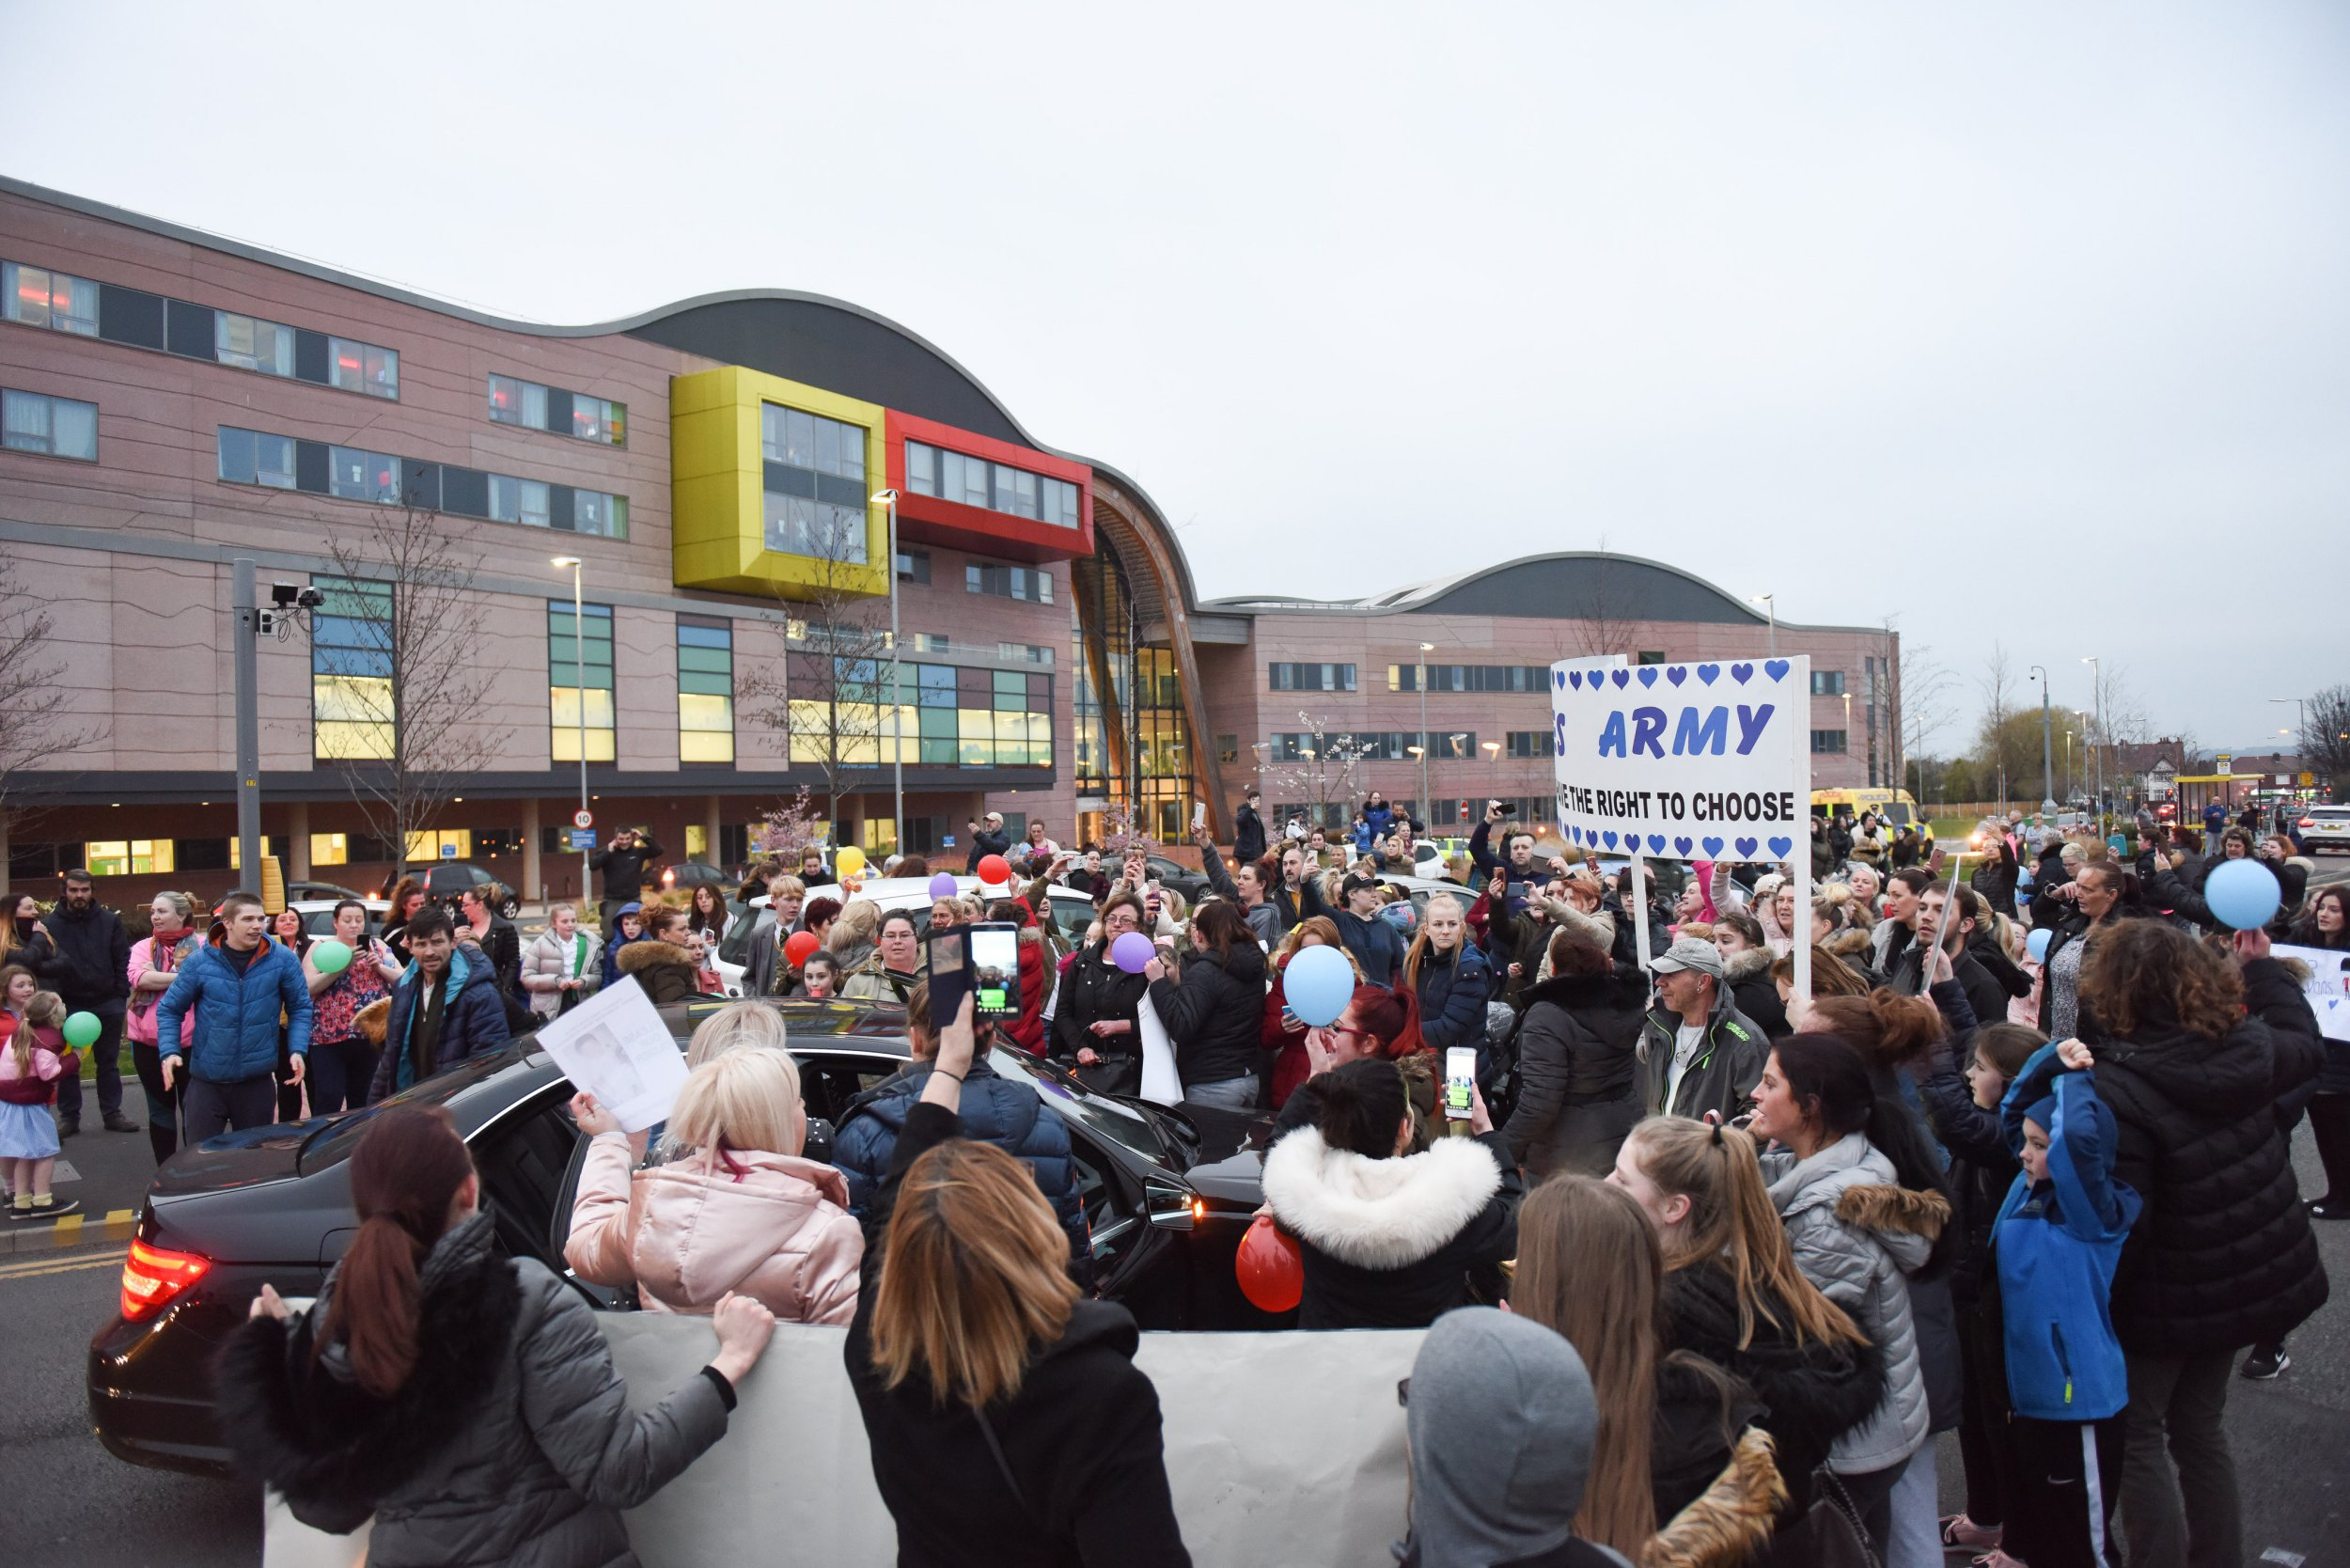 MERCURY PRESS. Liverpool, UK. 12/4/18. Pictured: A huge protest blocking Prescot Road outside Alder Hey hospital in Liverpool this evening whilst Alfie Evans' parents reportedly are attempting to take their son out of hospital.